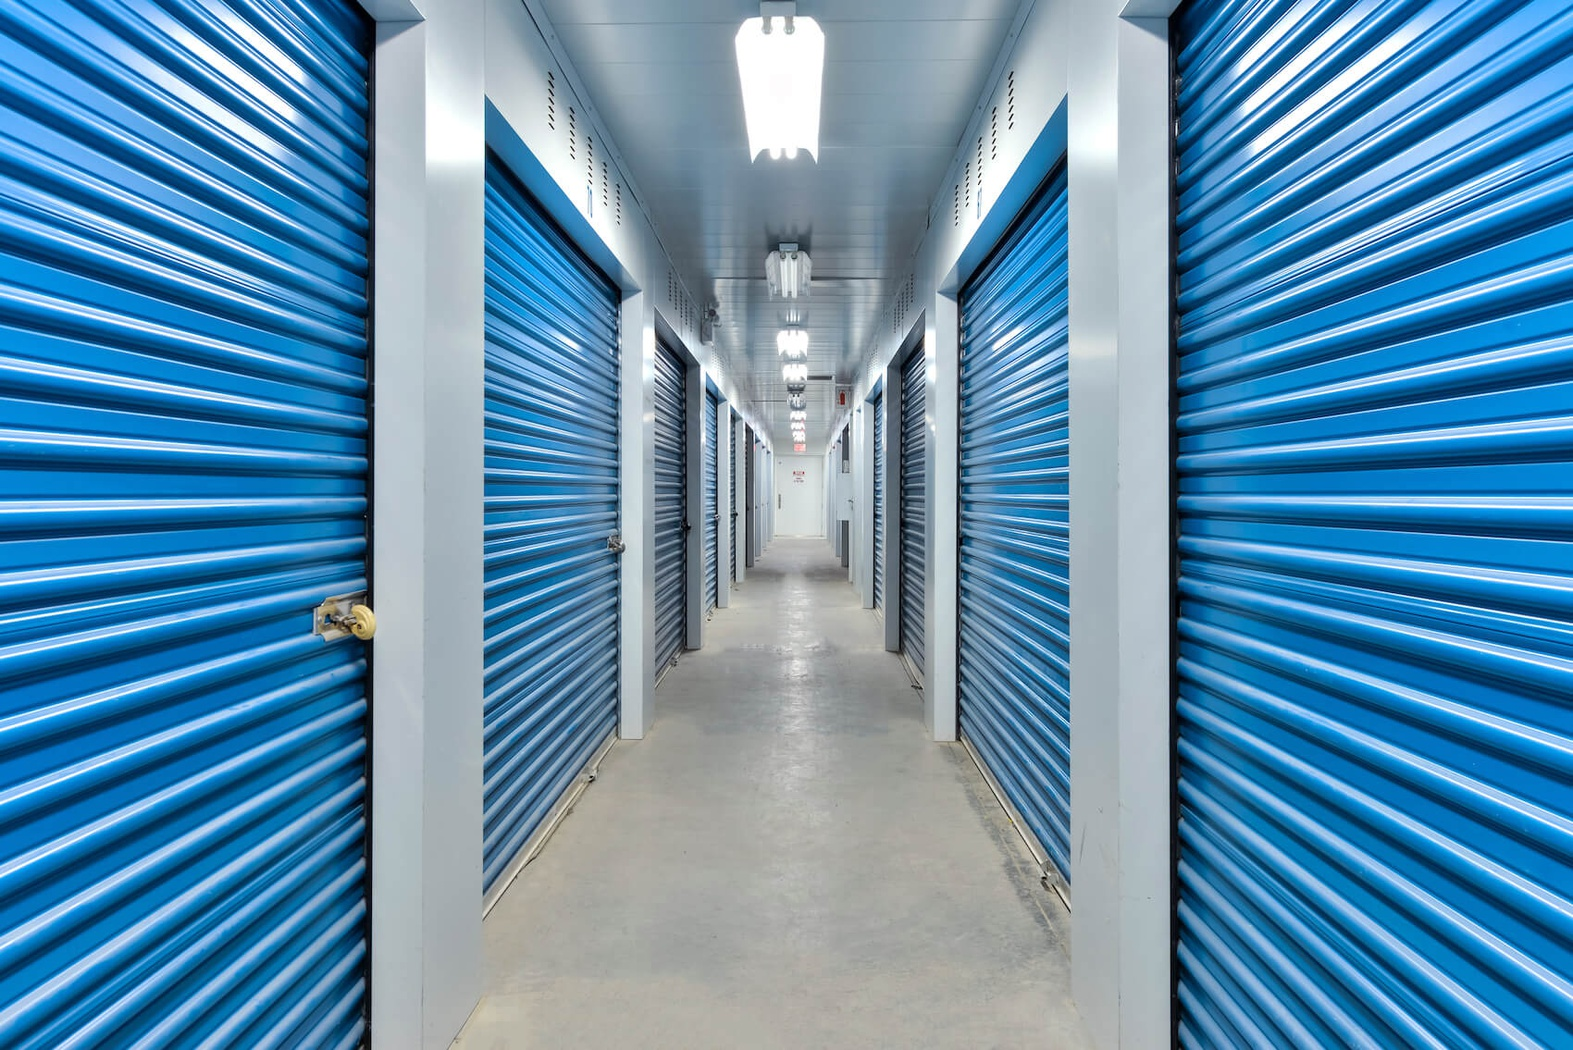 Rent Mississauga storage units at 1355 Aerowood Dr. We offer a wide-range of affordable self storage units and your first 4 weeks are free!